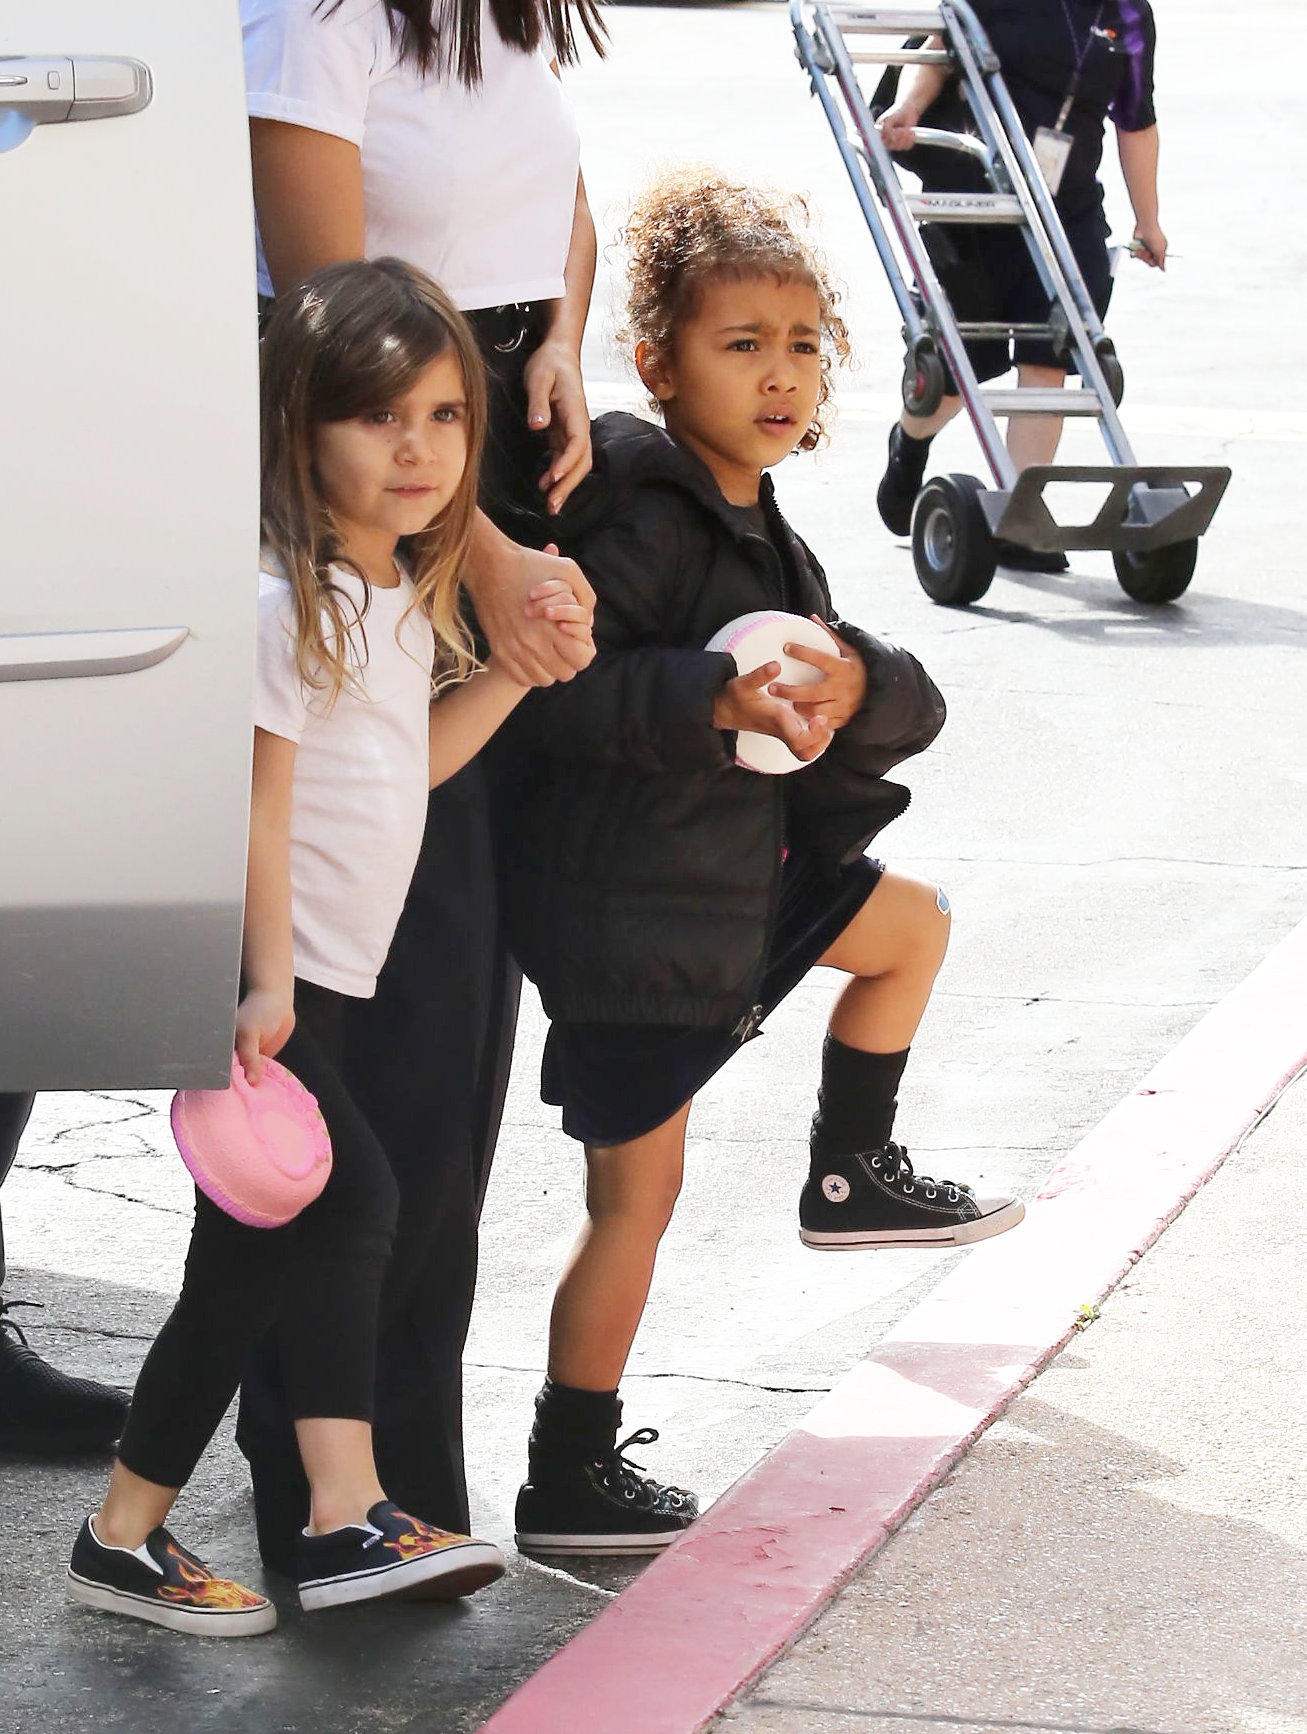 Wednesday, March 14, 2018 - Adorable Nori West spends quality time with Aunt Kourtney Kardashian and cousin Penelope Disick while parents Kim Kardashian and Kanye West are vacationing in Wyoming. North is adorable in a black puffer coat and black dress paired with kiddie Chuck Taylors, and is showing a bandaged knee. Daddy/X17online.com